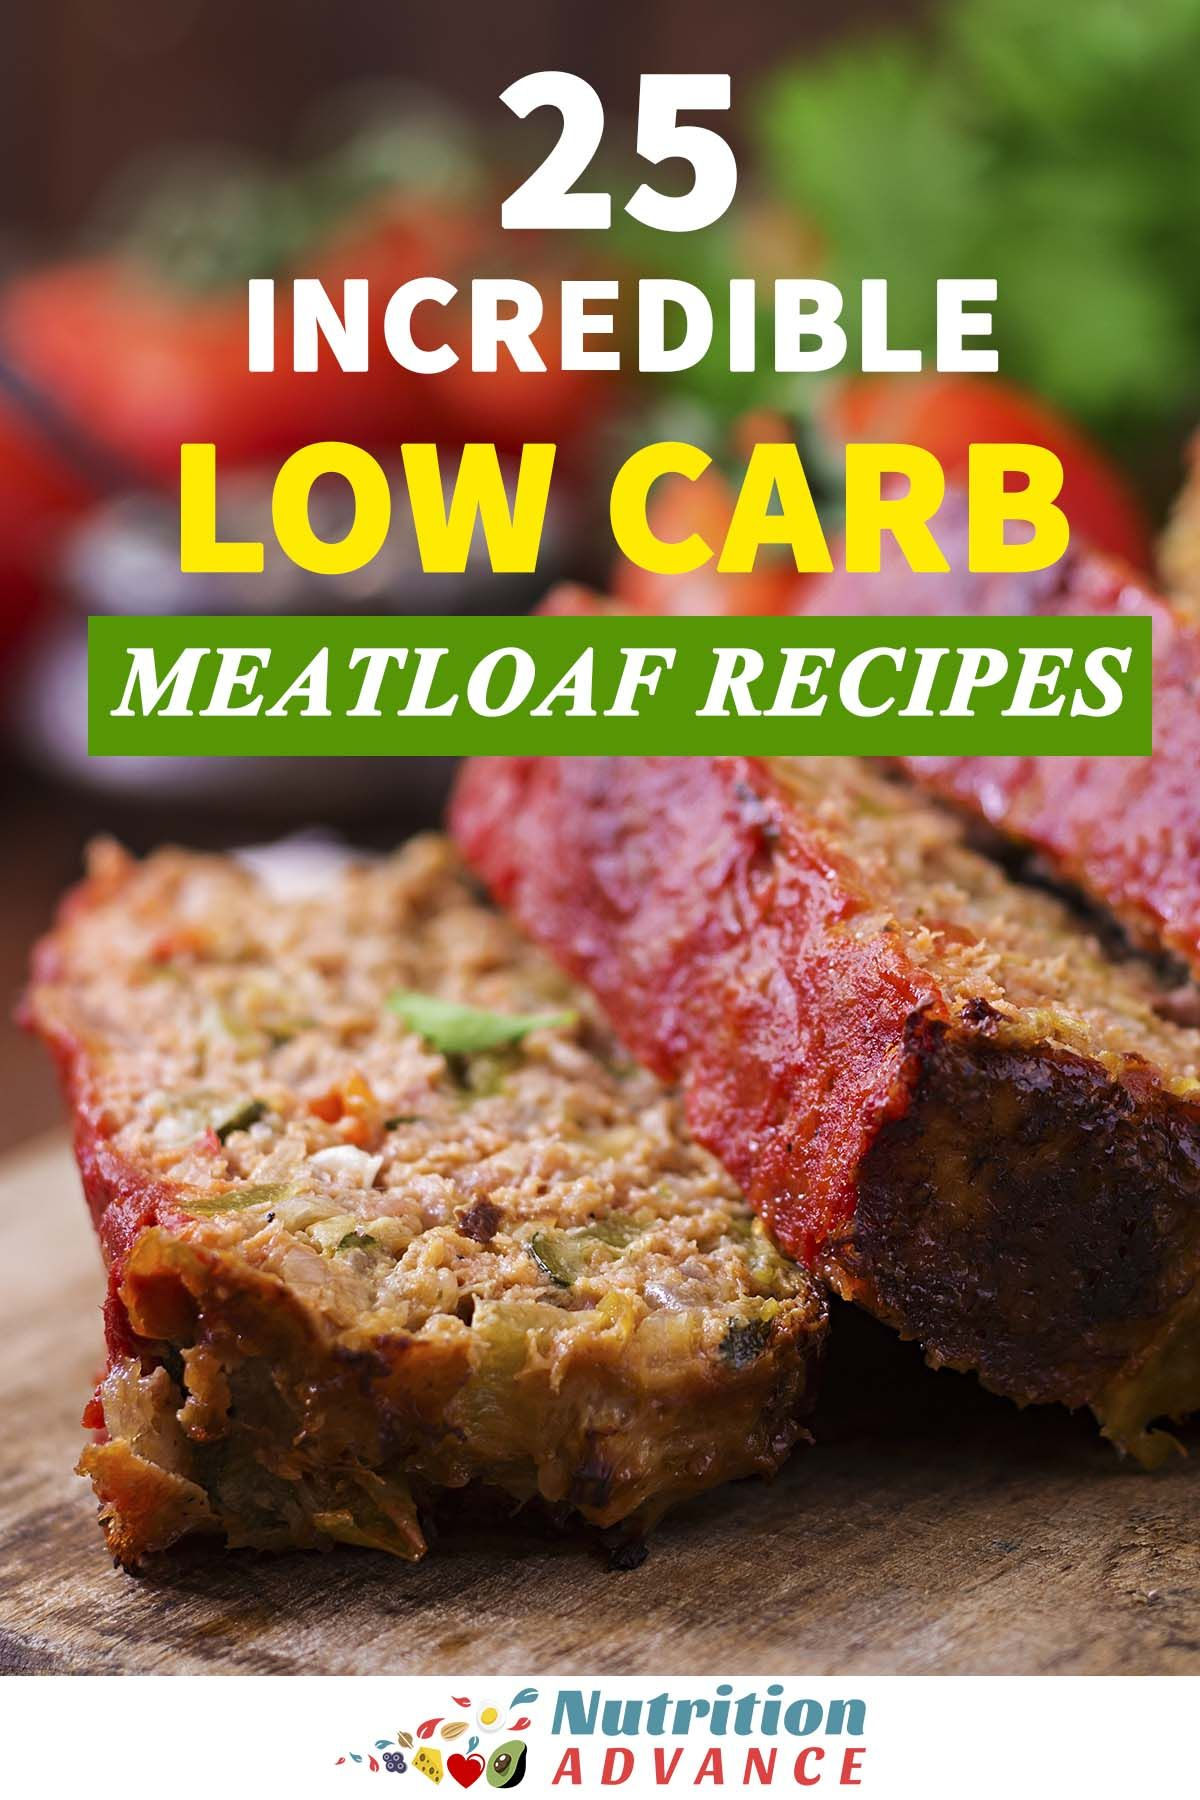 25 Incredible Low Carb Meatloaf Recipes With Images Low Carb